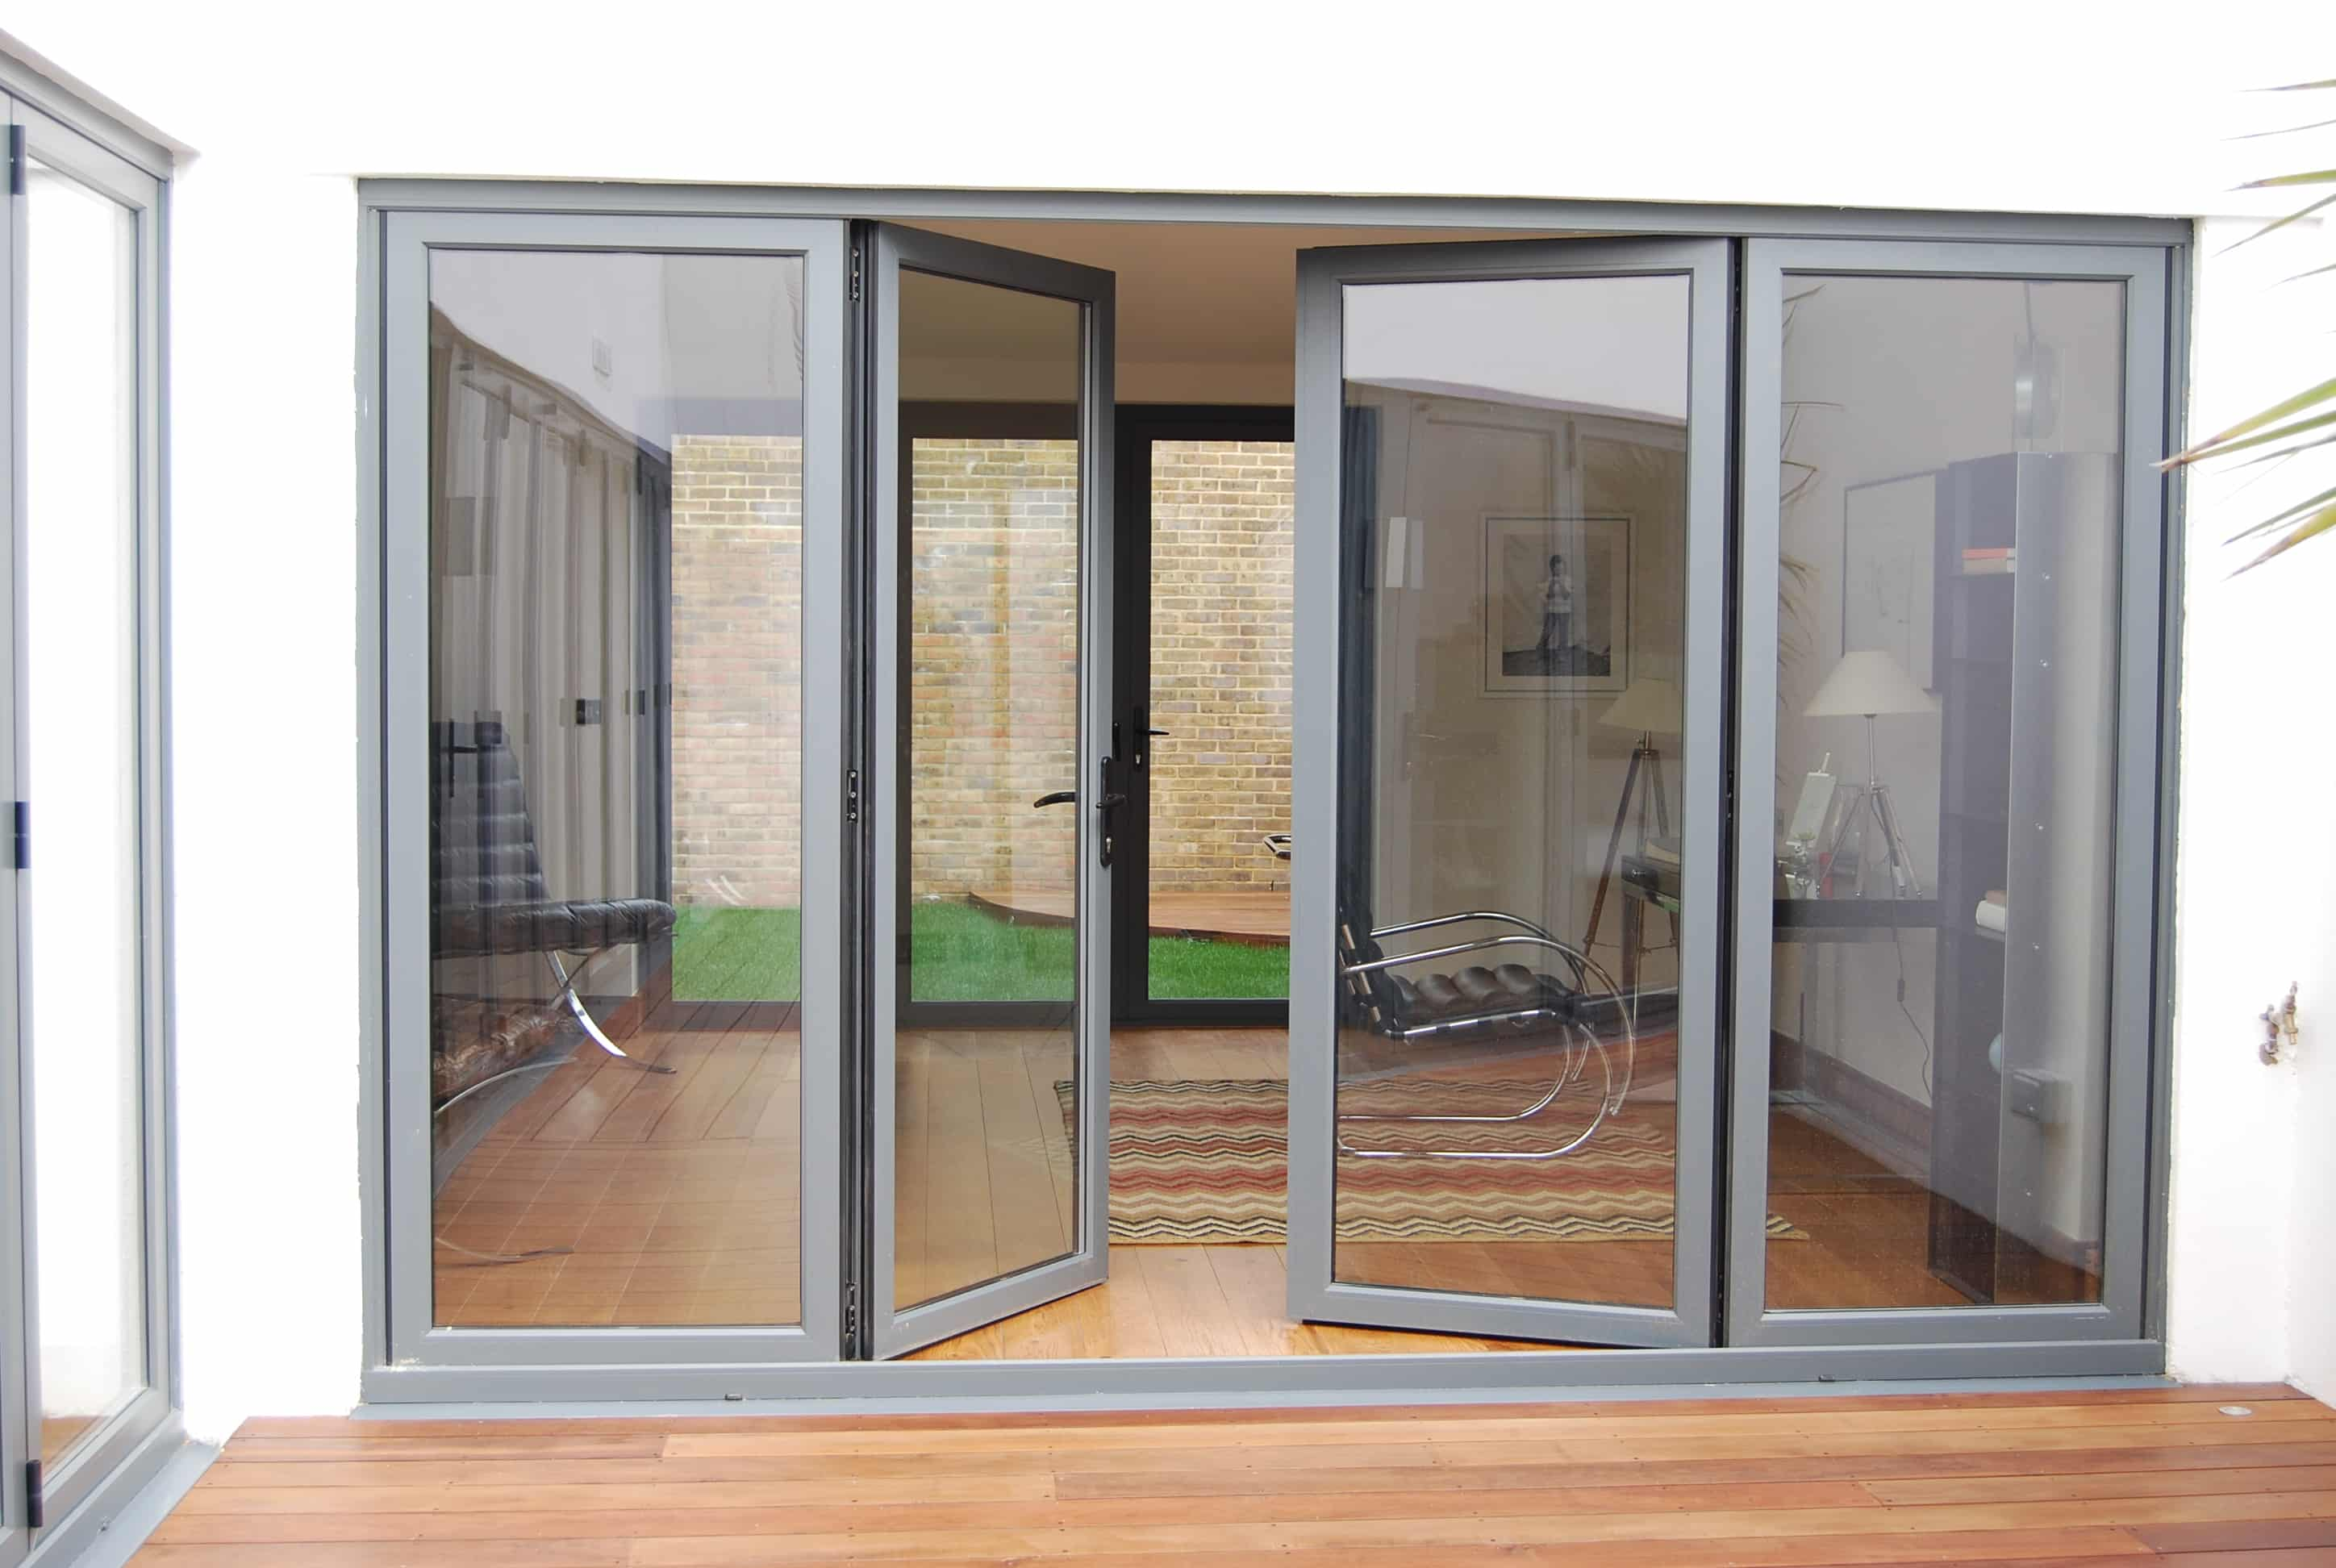 Marvelous french doors for sale ebay uk gallery ideas for French doors for sale uk